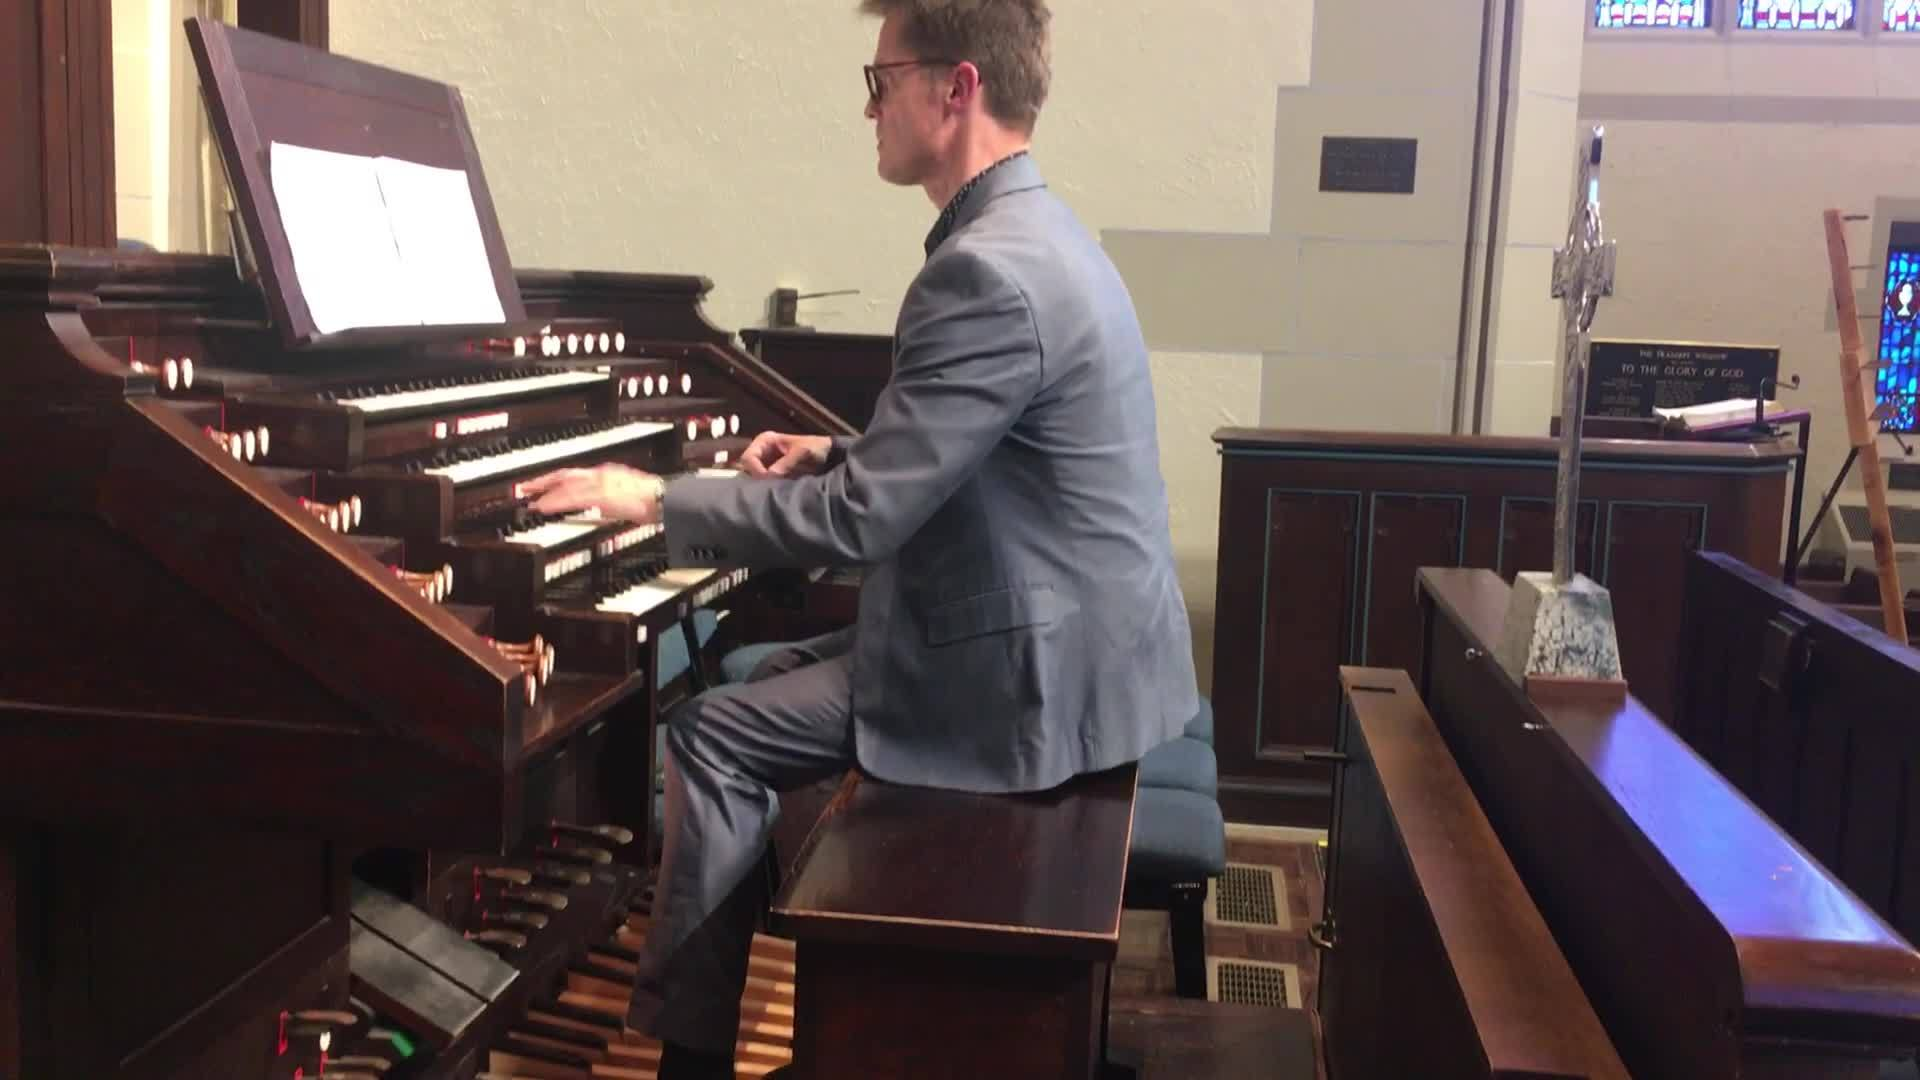 Local_concert_organist_played_in_Notre_D_2_20190417194354